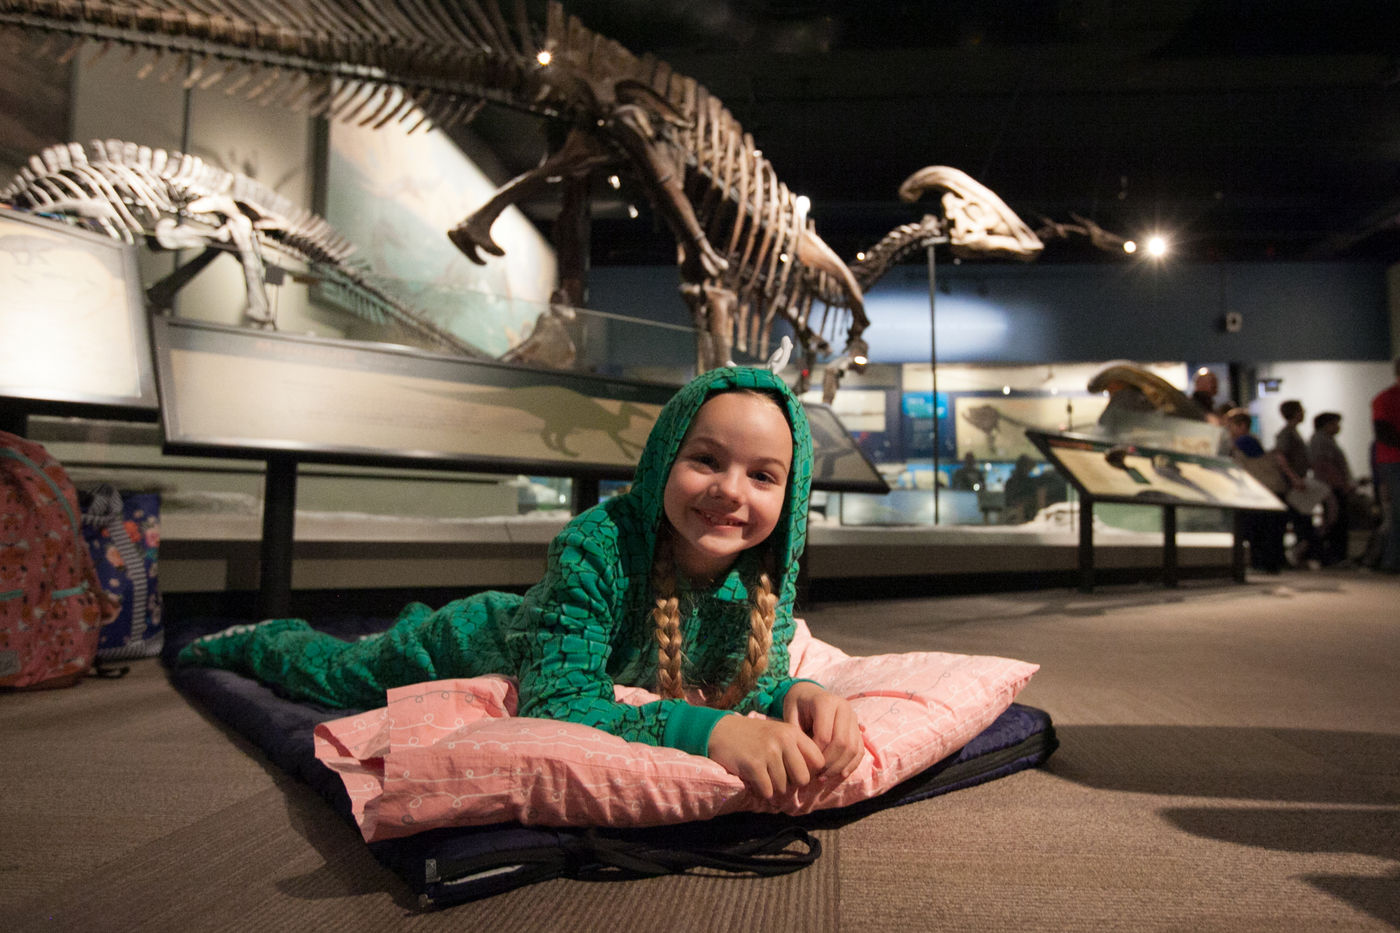 Young girl smiles to the camera while laying atop a sleeping bag in the Elizabeth Morse Genius Hall of Dinosaurs. A Parasaurolophus fossil stands in the back.